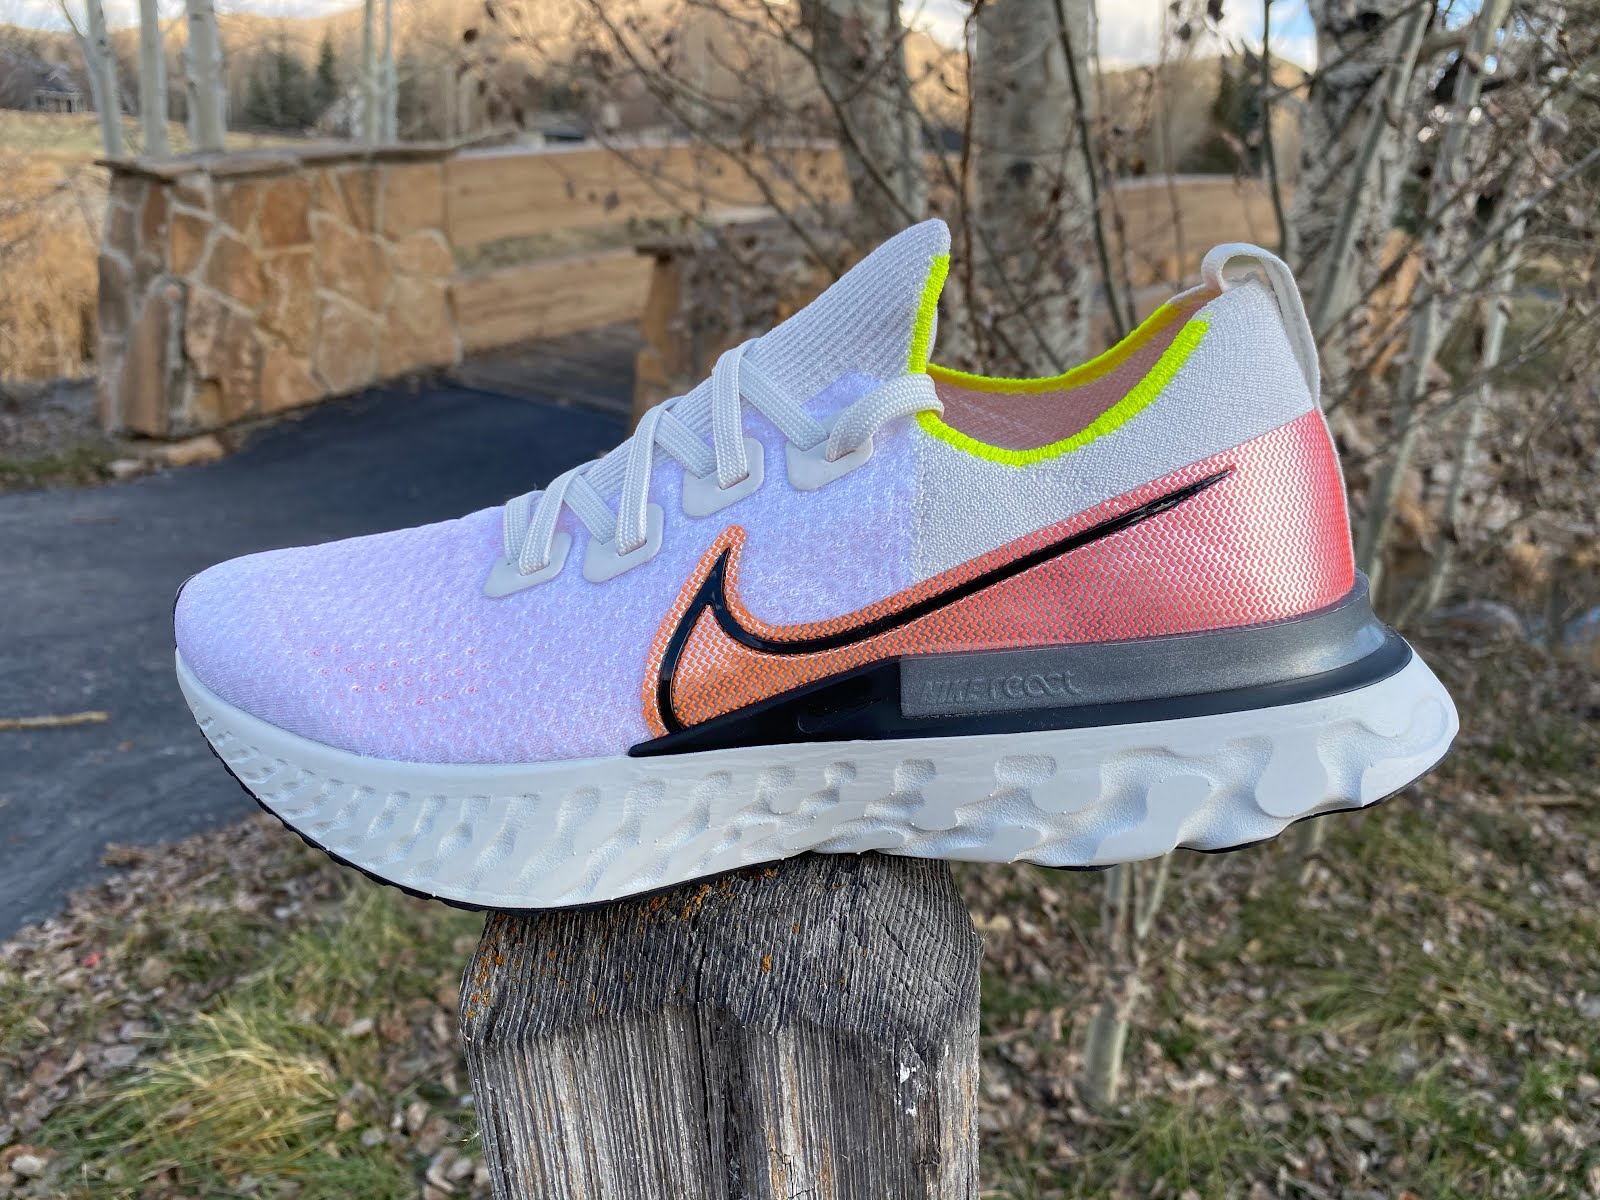 Road Trail Run Nike React Infinity Run Review. A softer